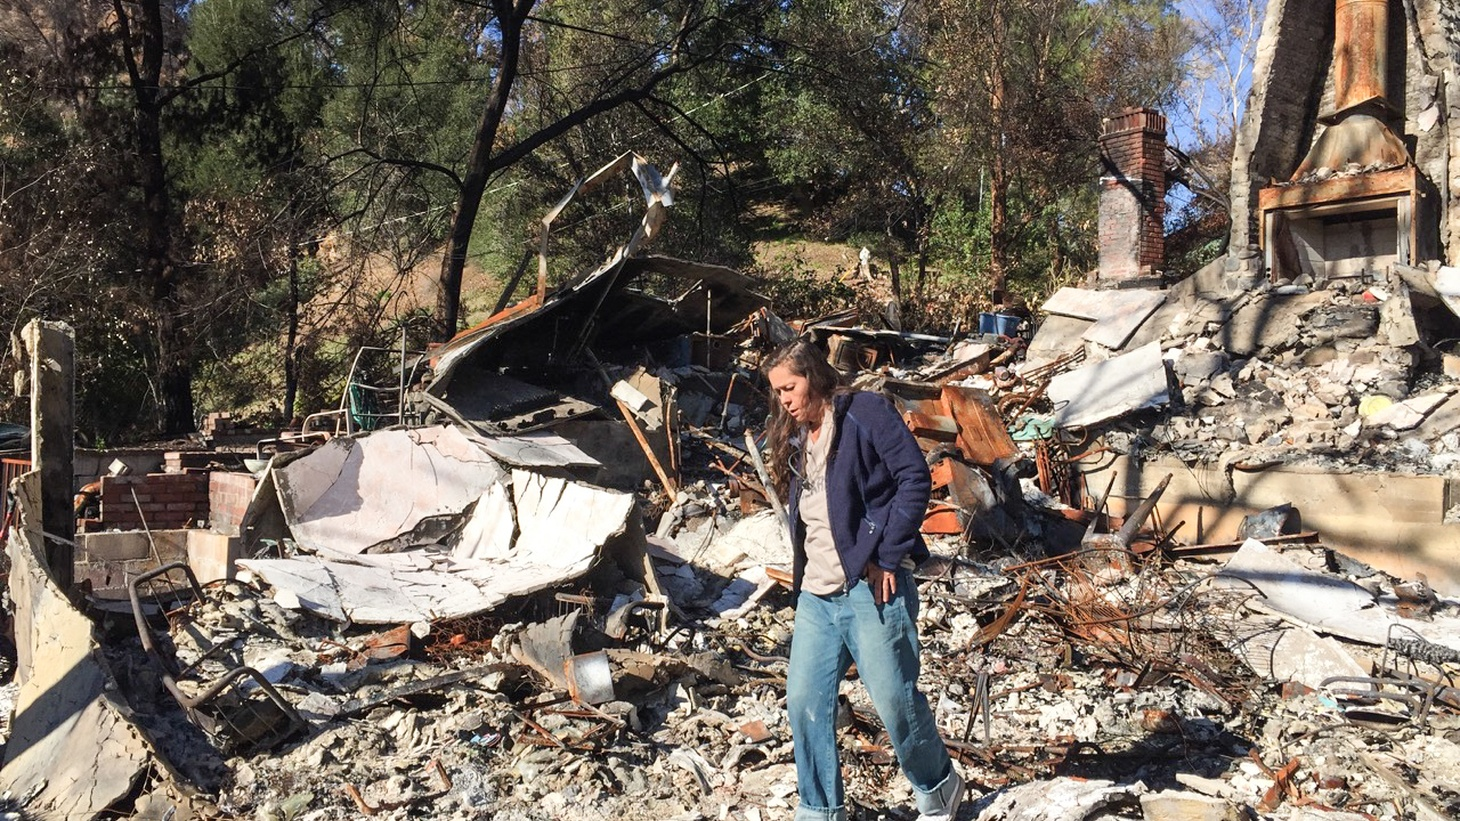 Mai Lindquist amidst the rubble after the Woolsey Fire.